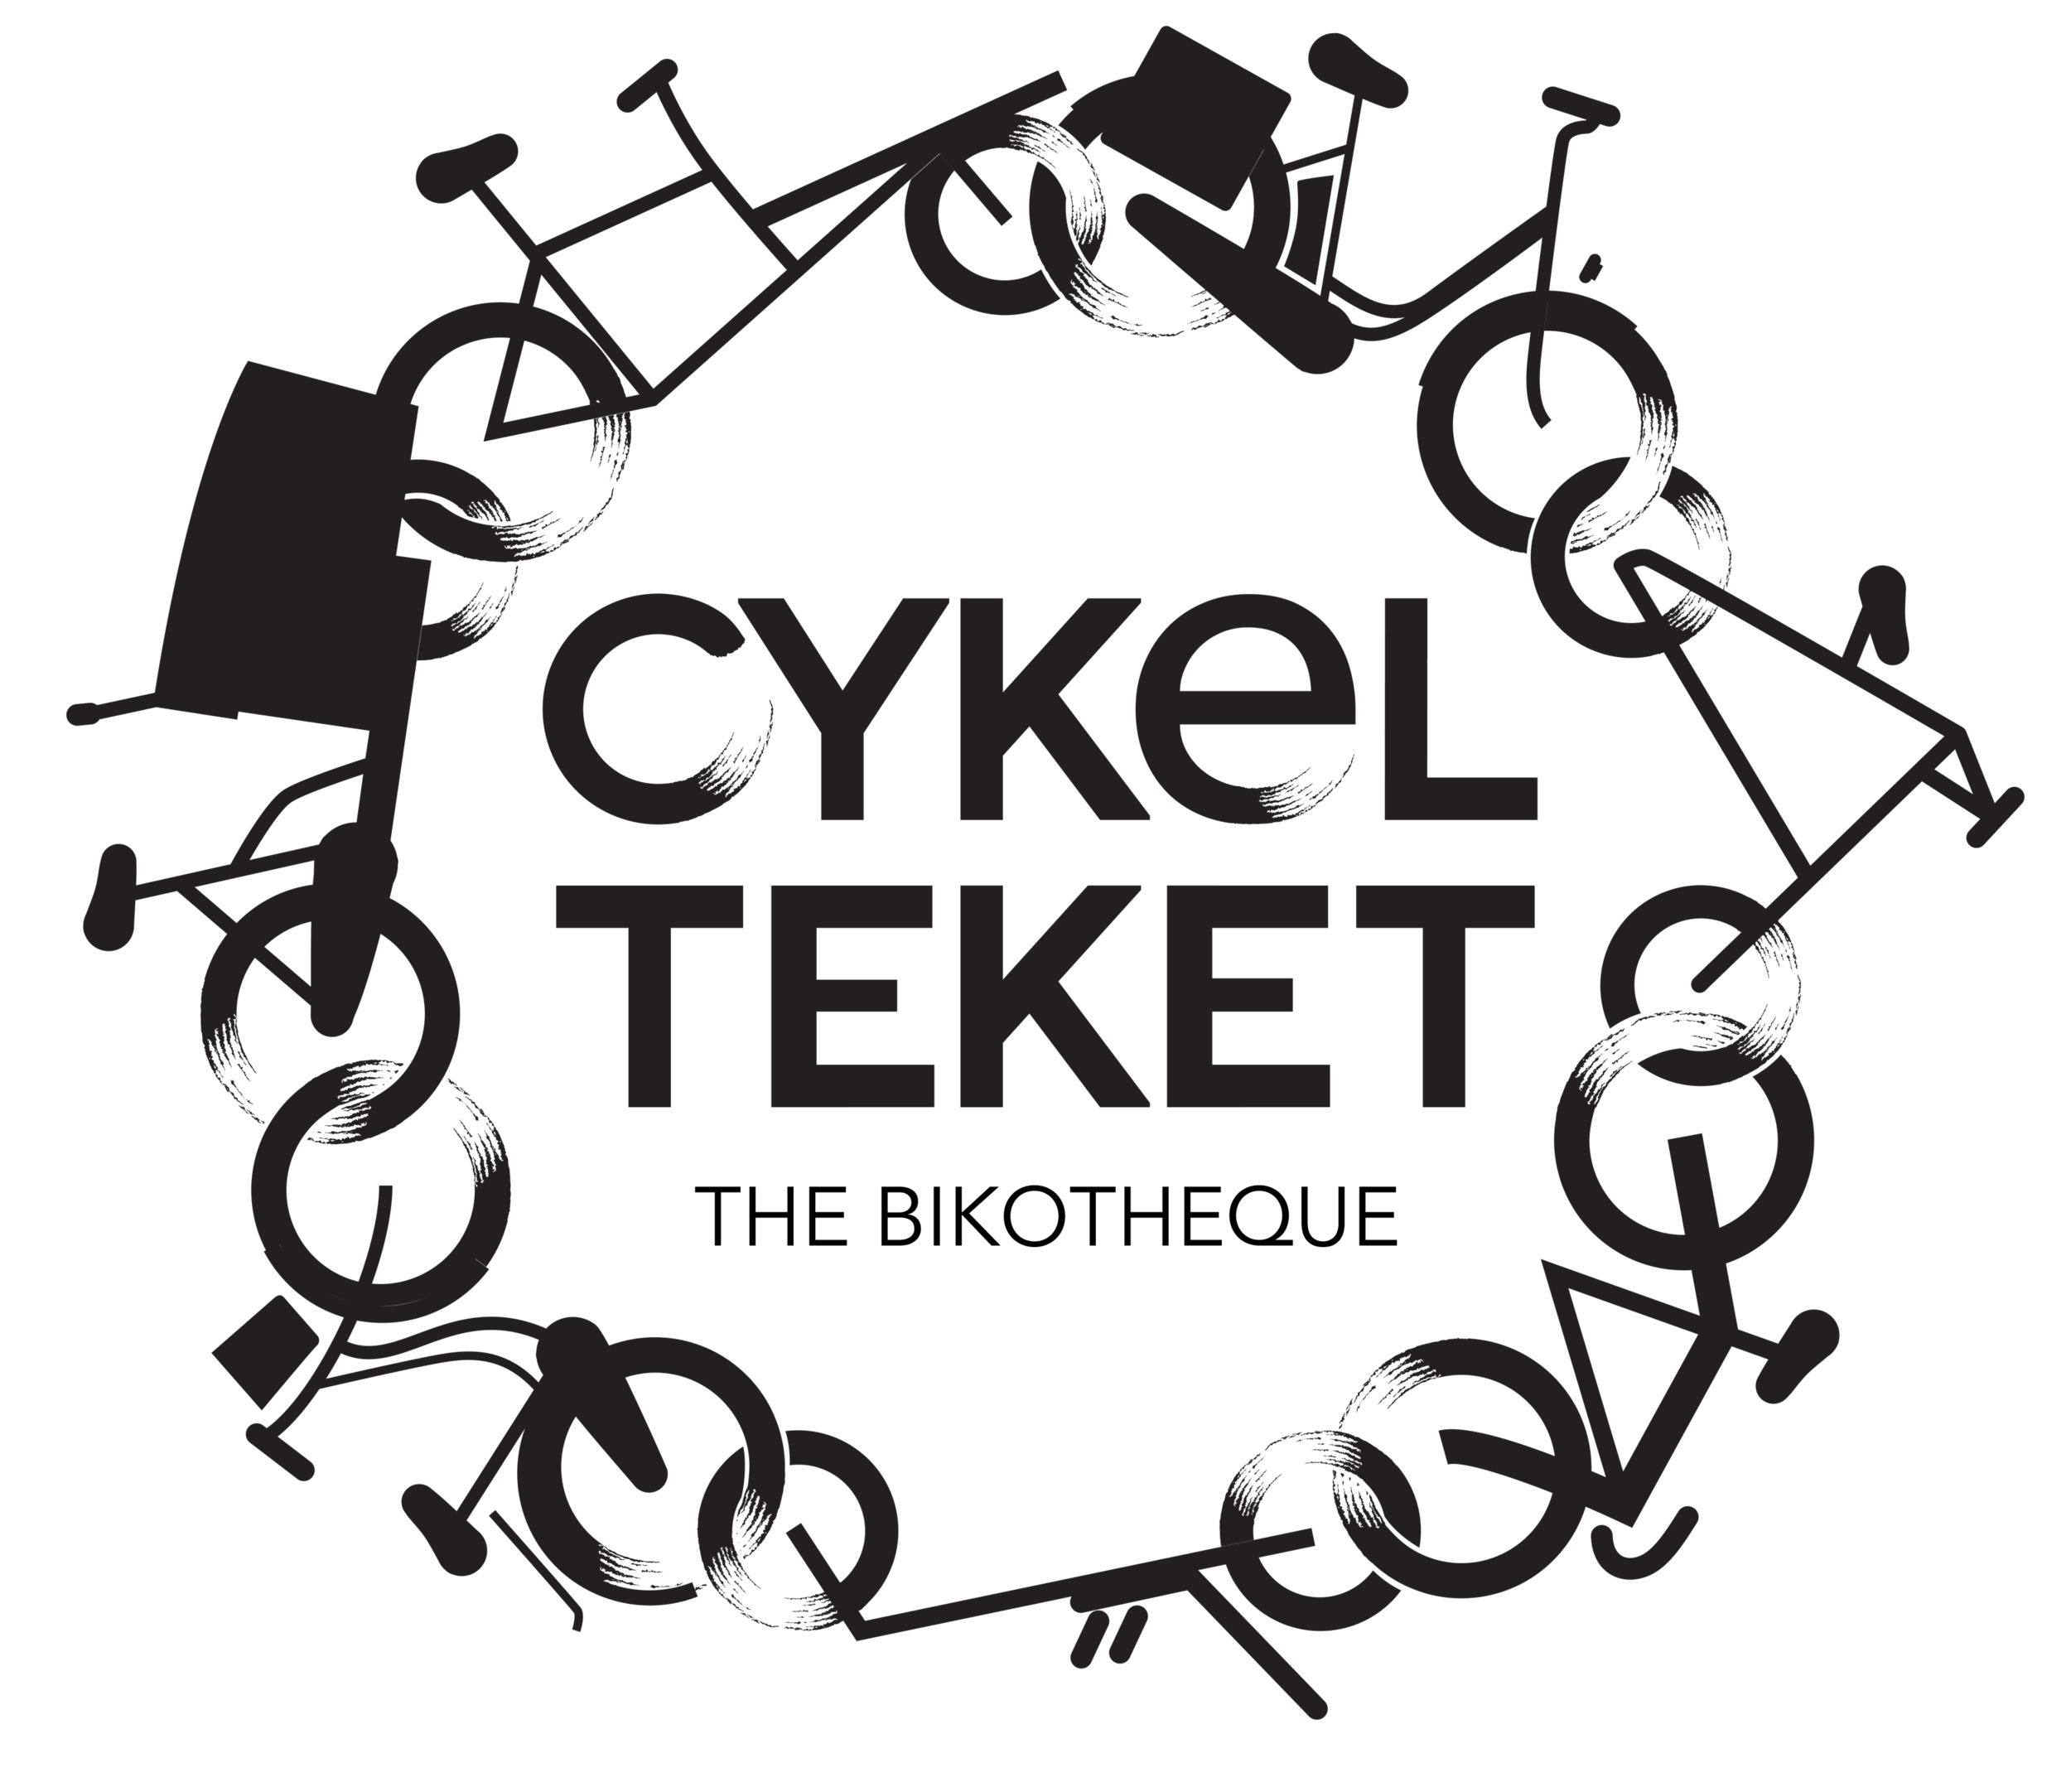 Cykelteket-The-Bikotheque.png